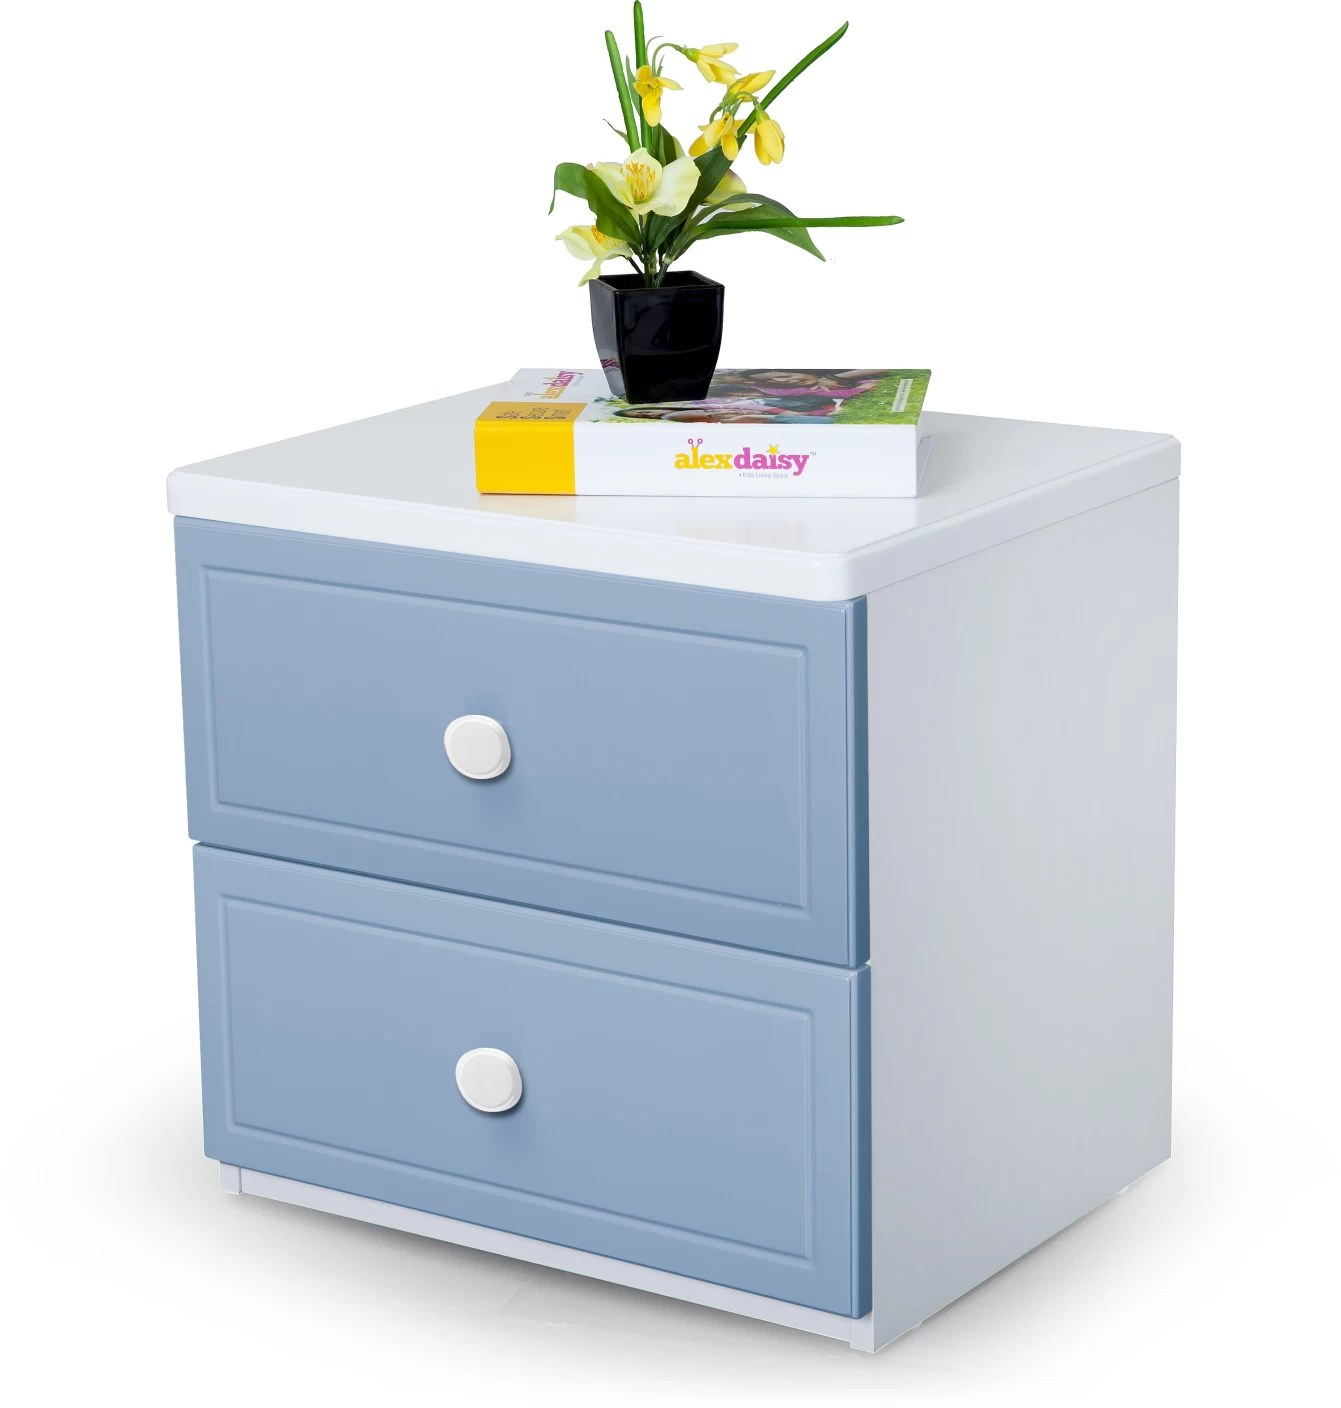 Alex Daisy French Engineered Wood Bedside Table Price In